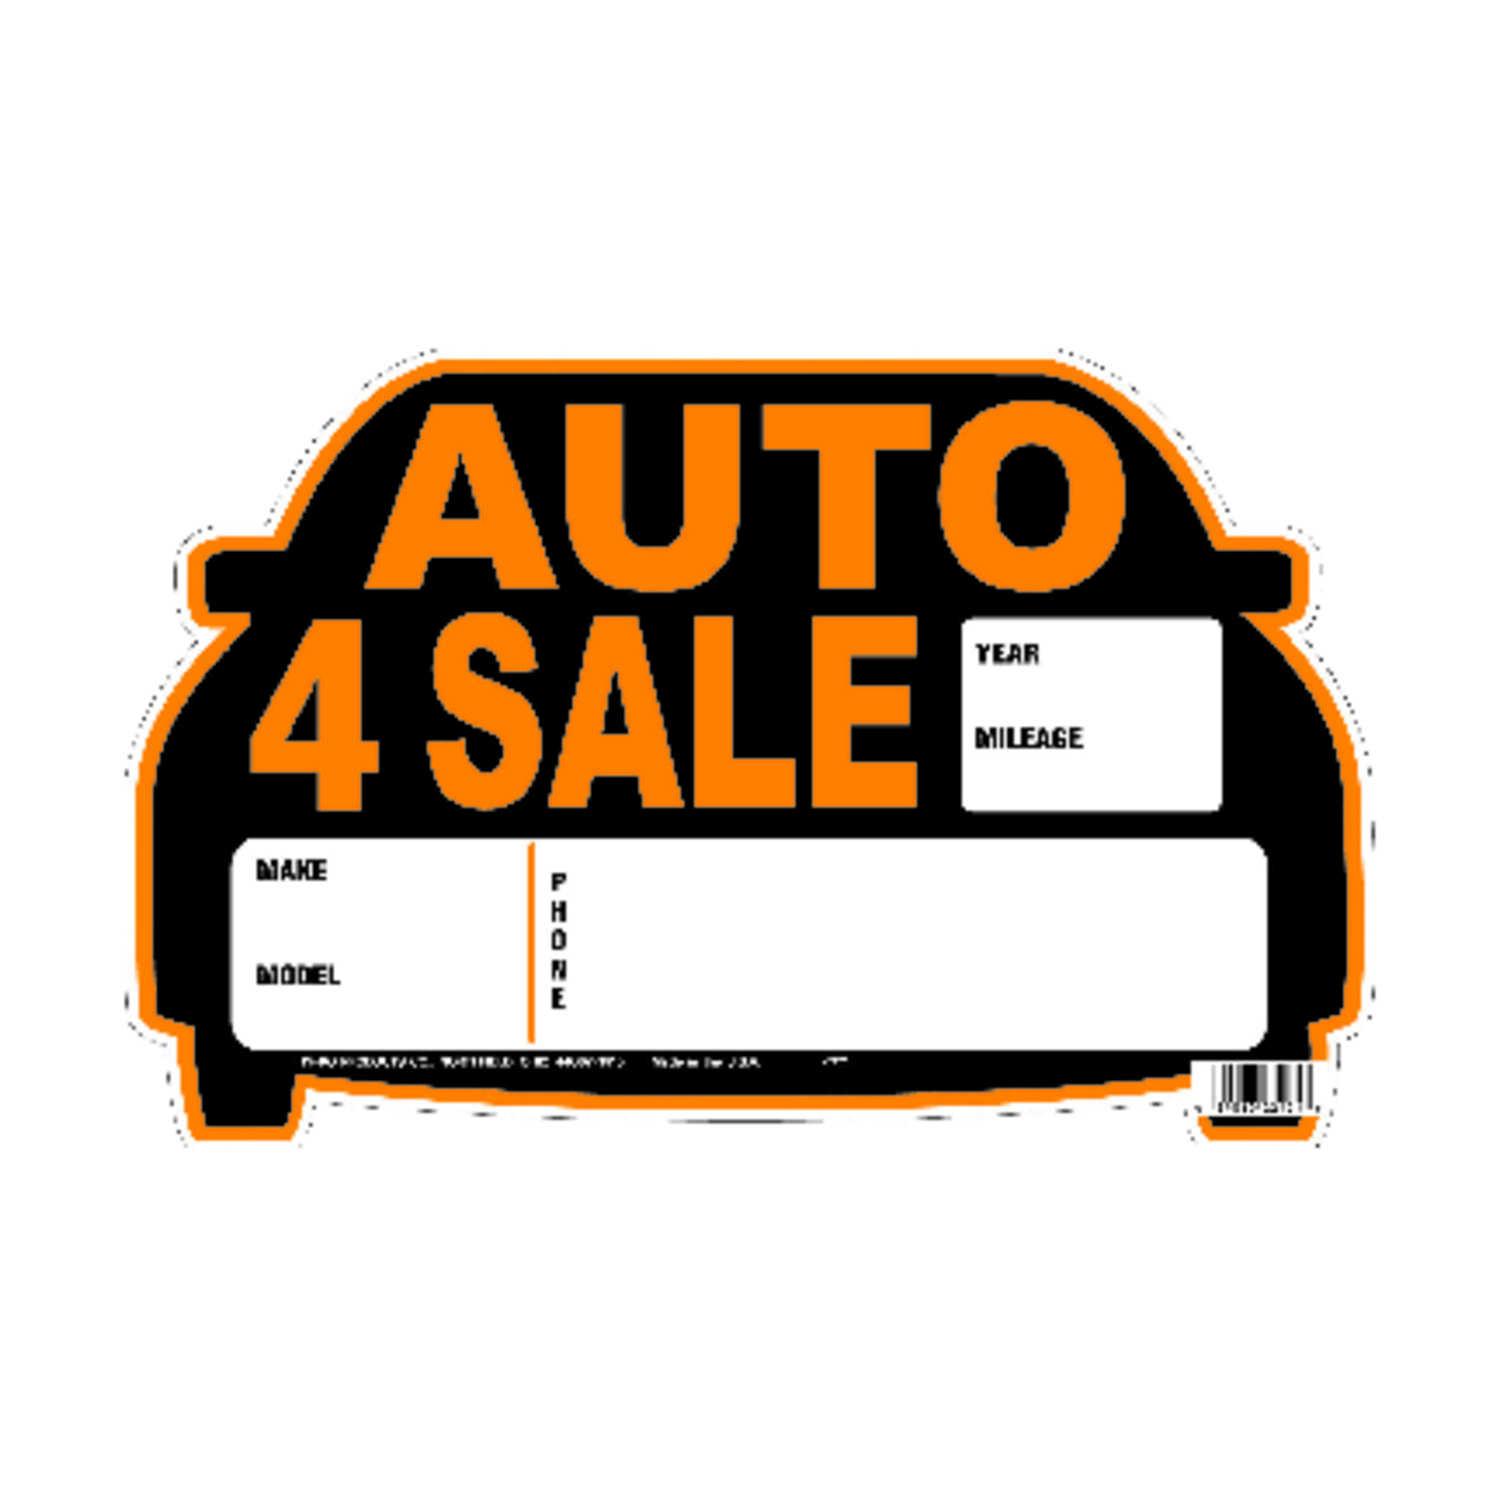 Hy-Ko  English  Auto for Sale  Sign  Polyethylene  8.5 in. H x 13 in. W